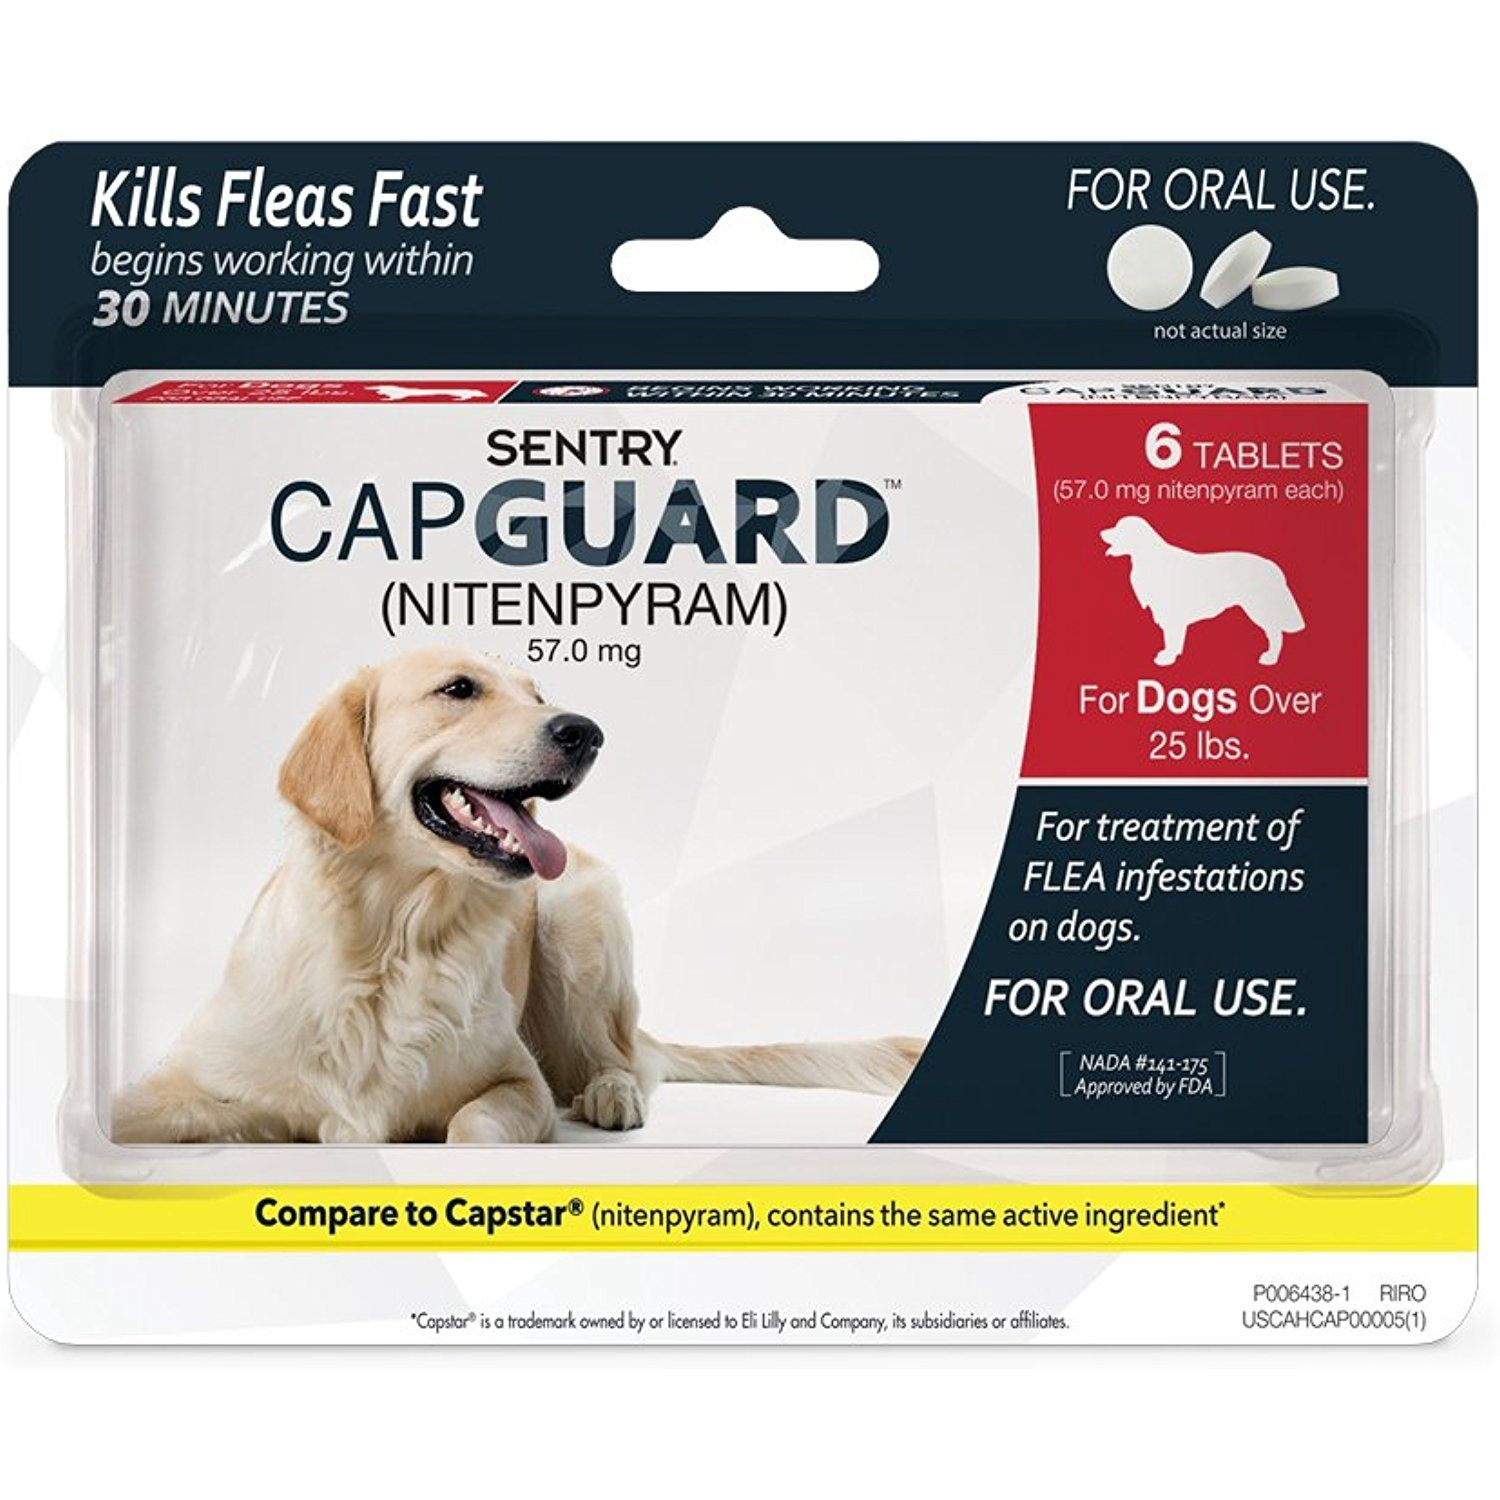 Sentry Capguard Nitenpyram Oral Flea Control Medication 25 Lbs And Over 6 Count To View Further For This Fleas Flea Treatment Dog Care Supplies